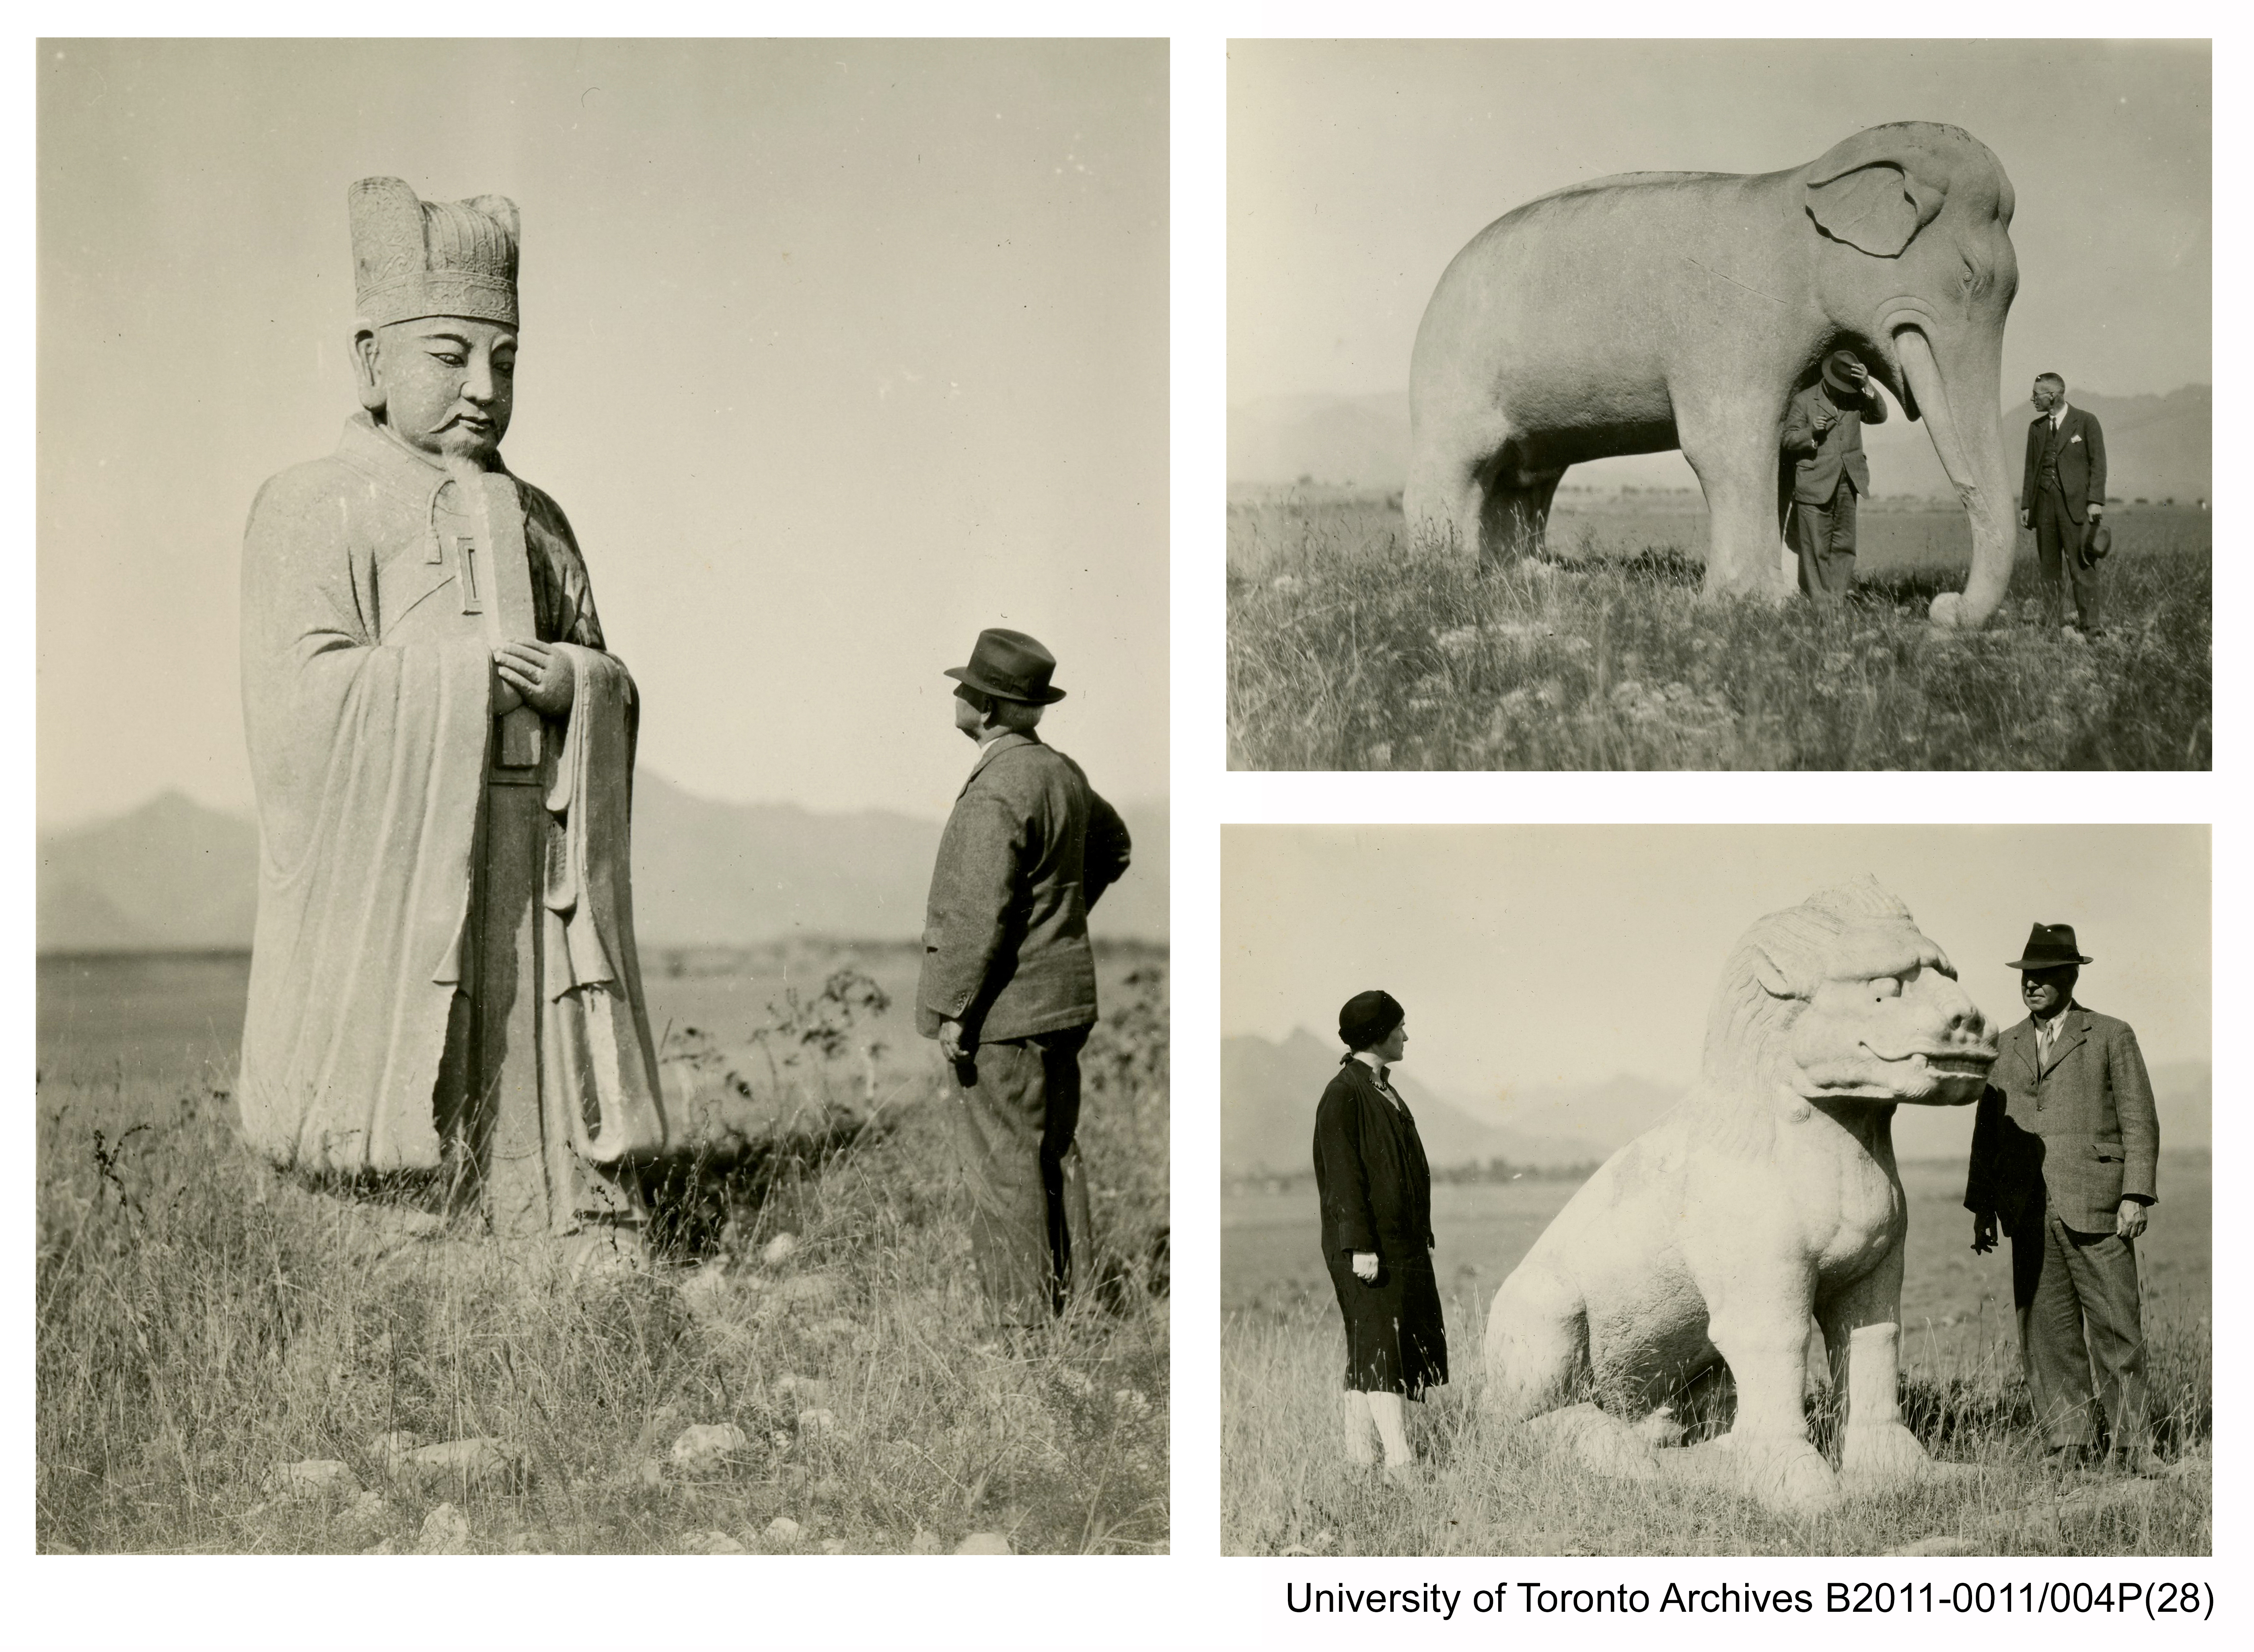 At the Ming tombs, 21 Oct 1920